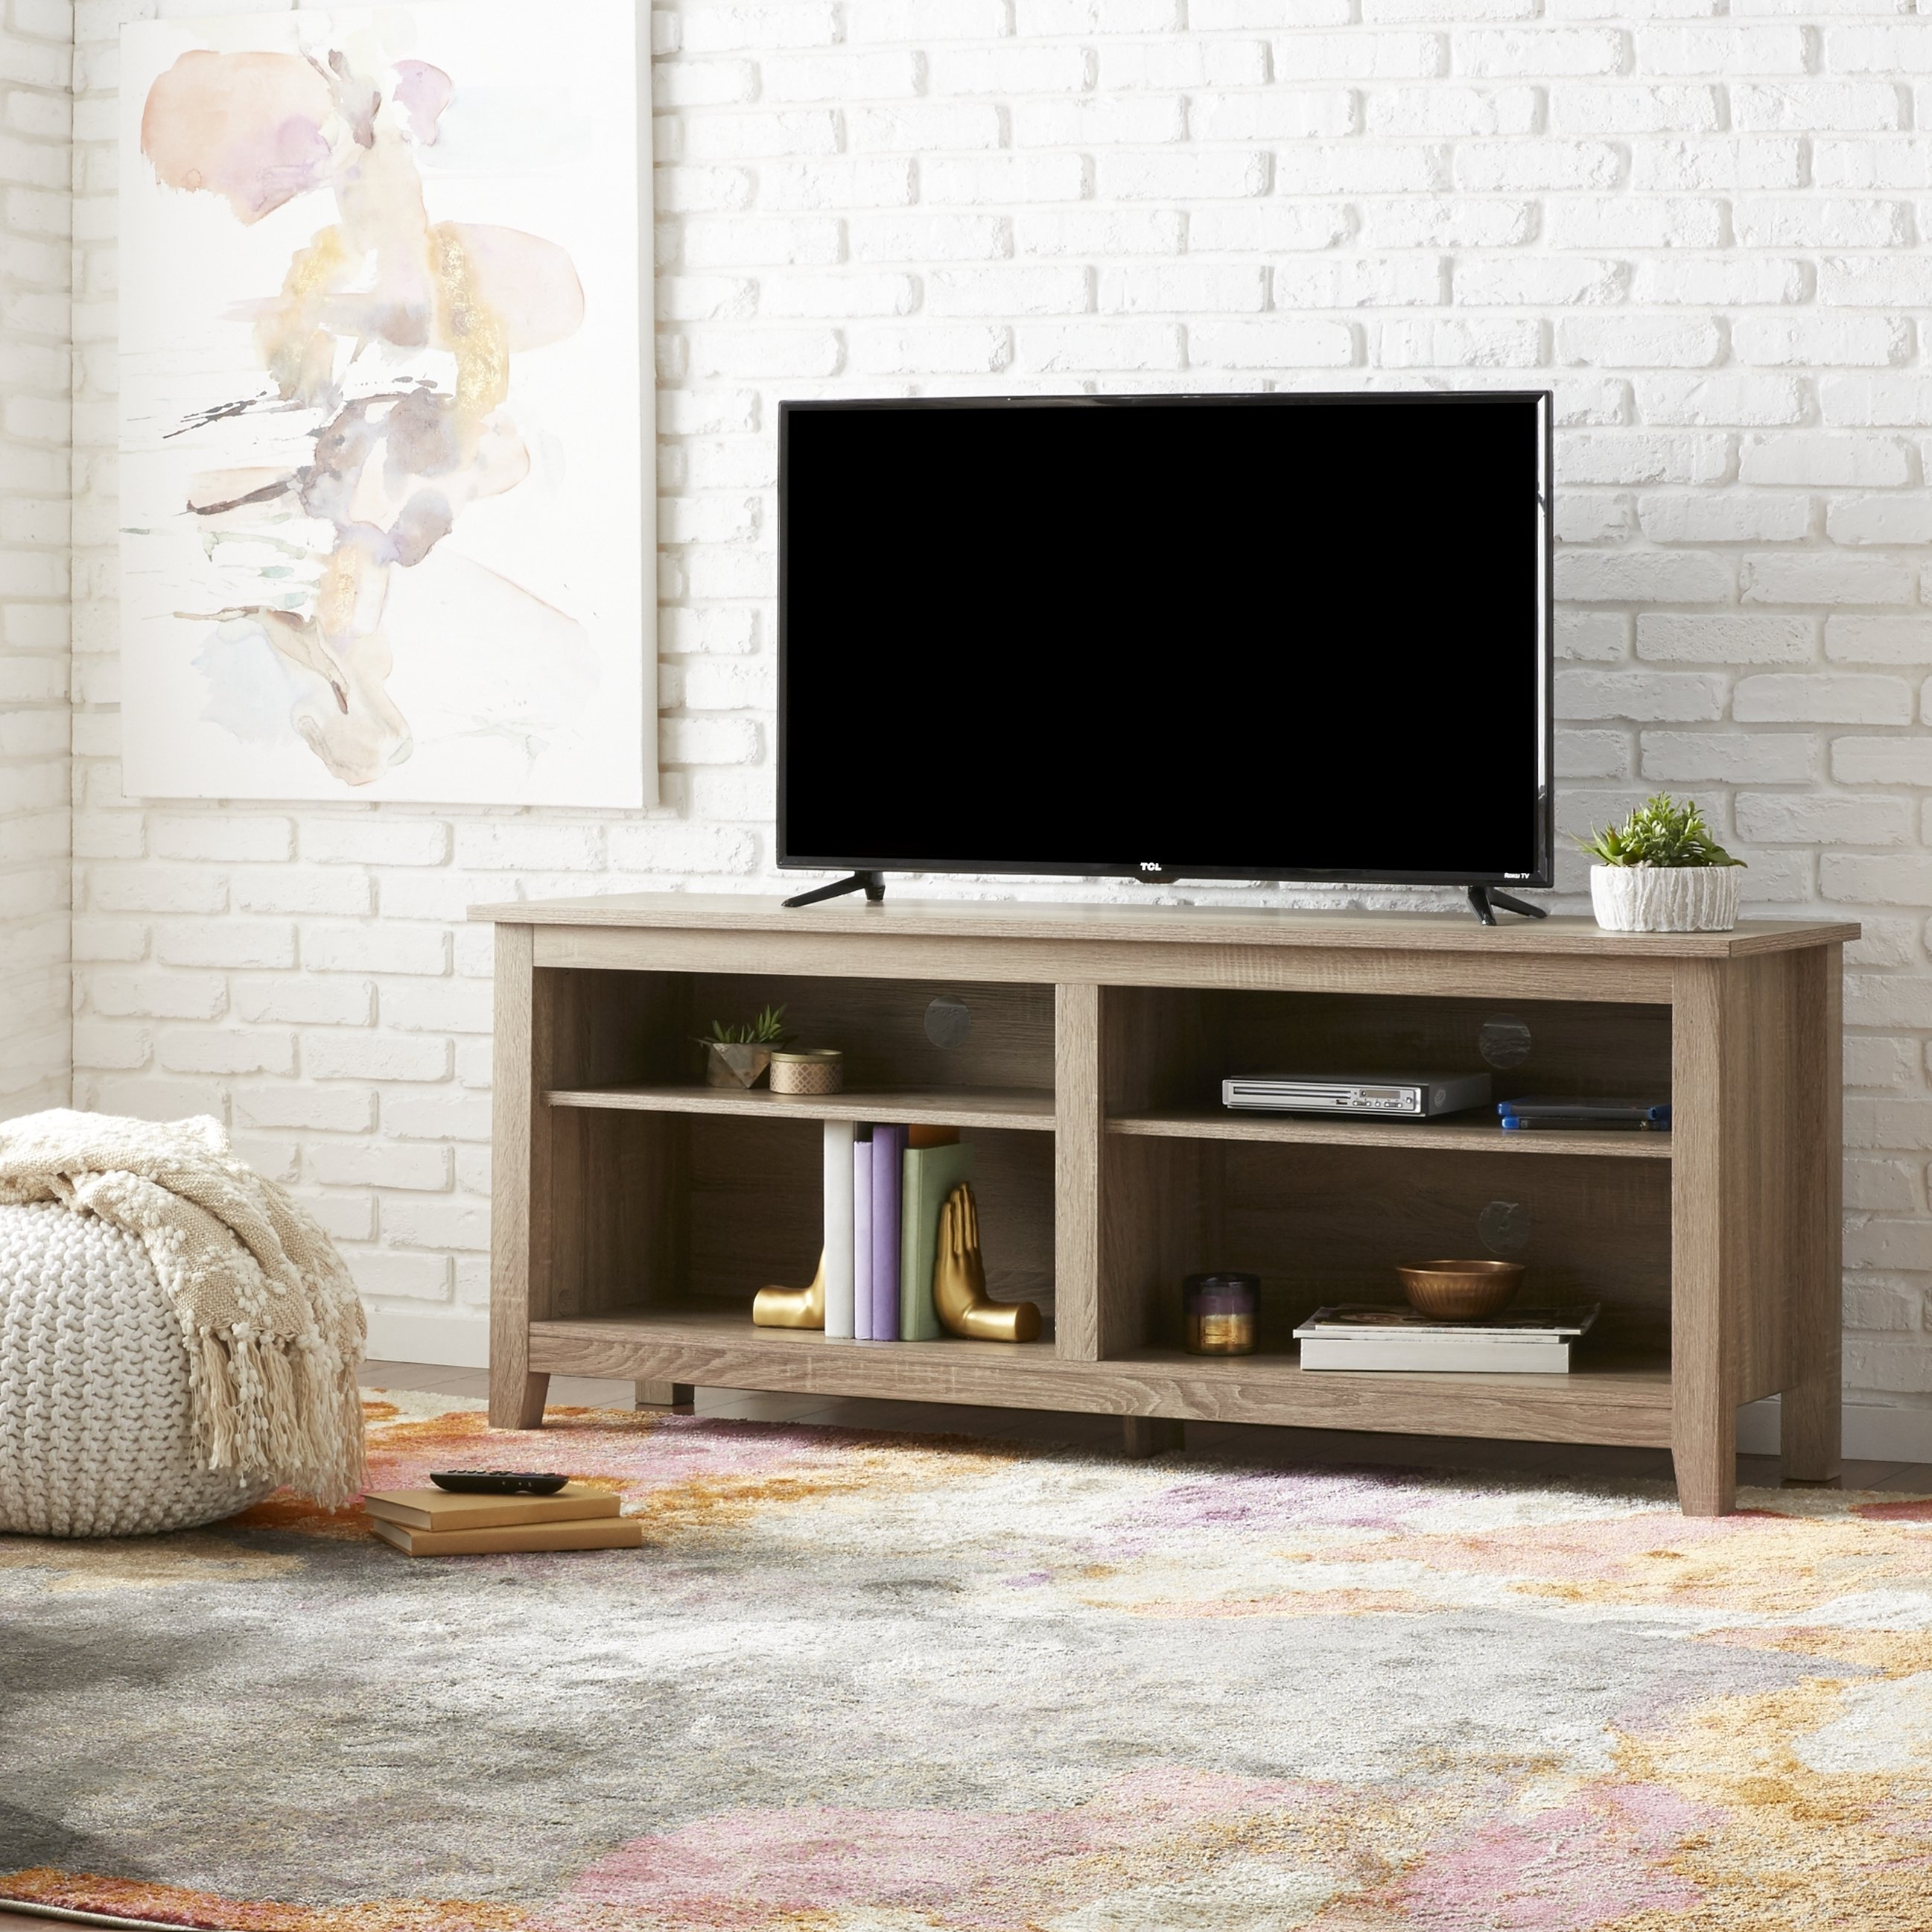 Shop 58 Inch Driftwood Tv Stand – Free Shipping On Orders Over $45 Regarding Abbott Driftwood 60 Inch Tv Stands (View 3 of 30)